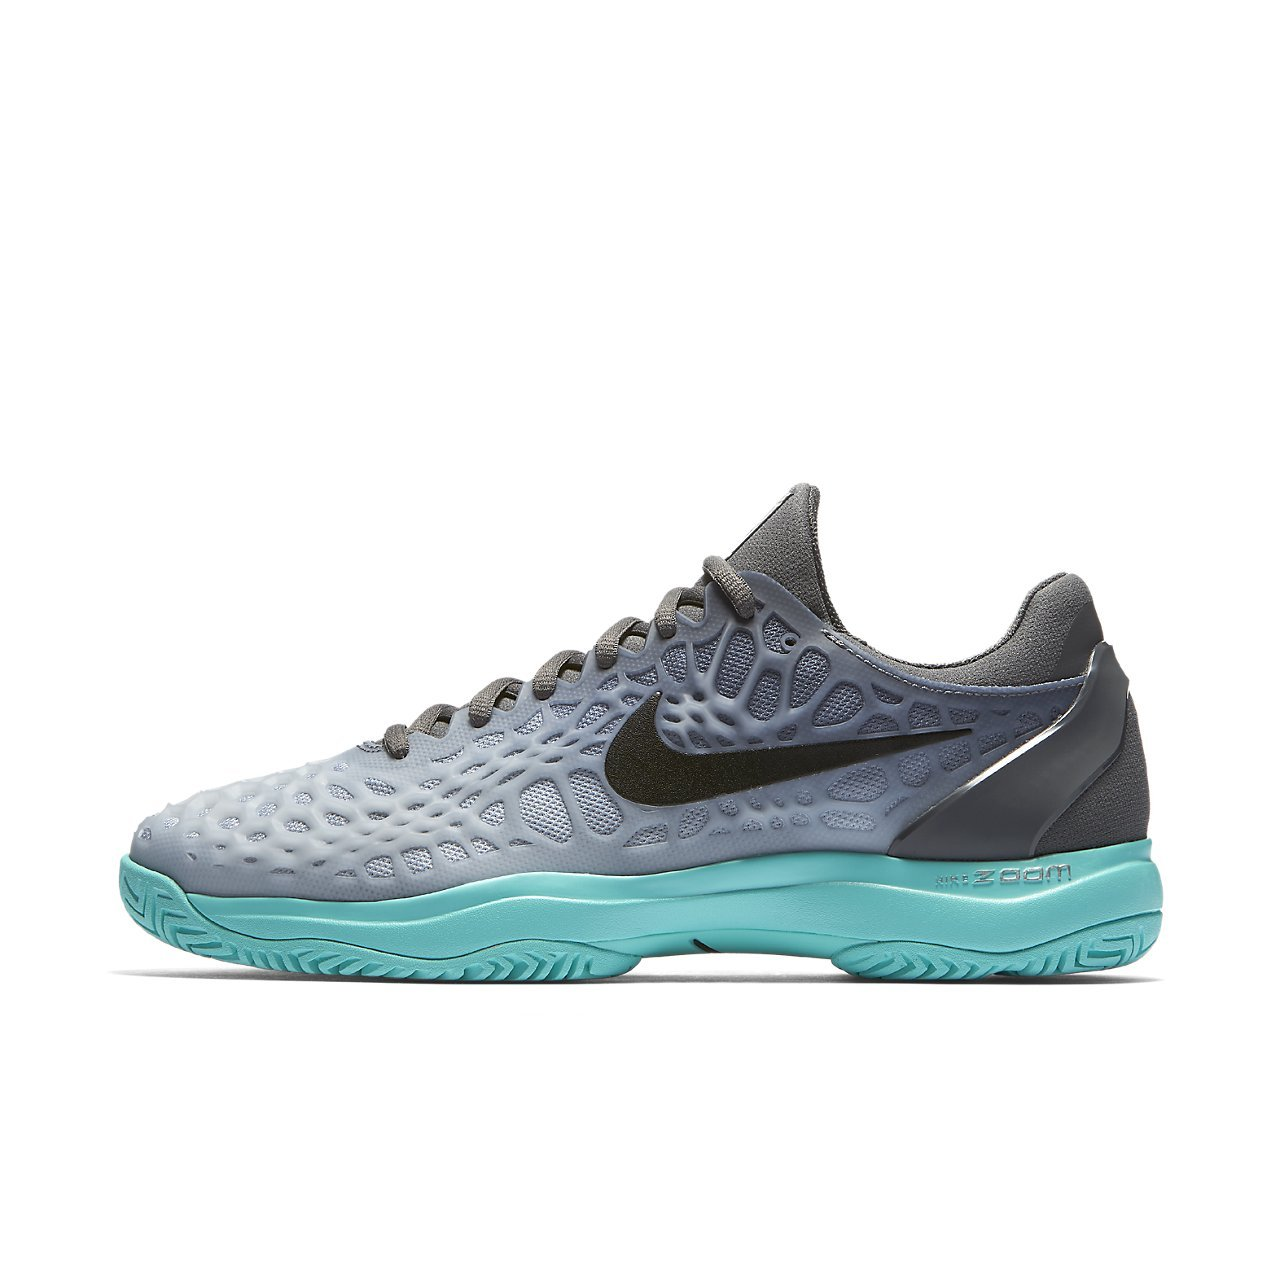 Nike Mens Zoom Cage 3 Tennis Shoes B00BIVROUO 11.5 M US|Dark Grey/Black/Aurora Green/Wolf Grey